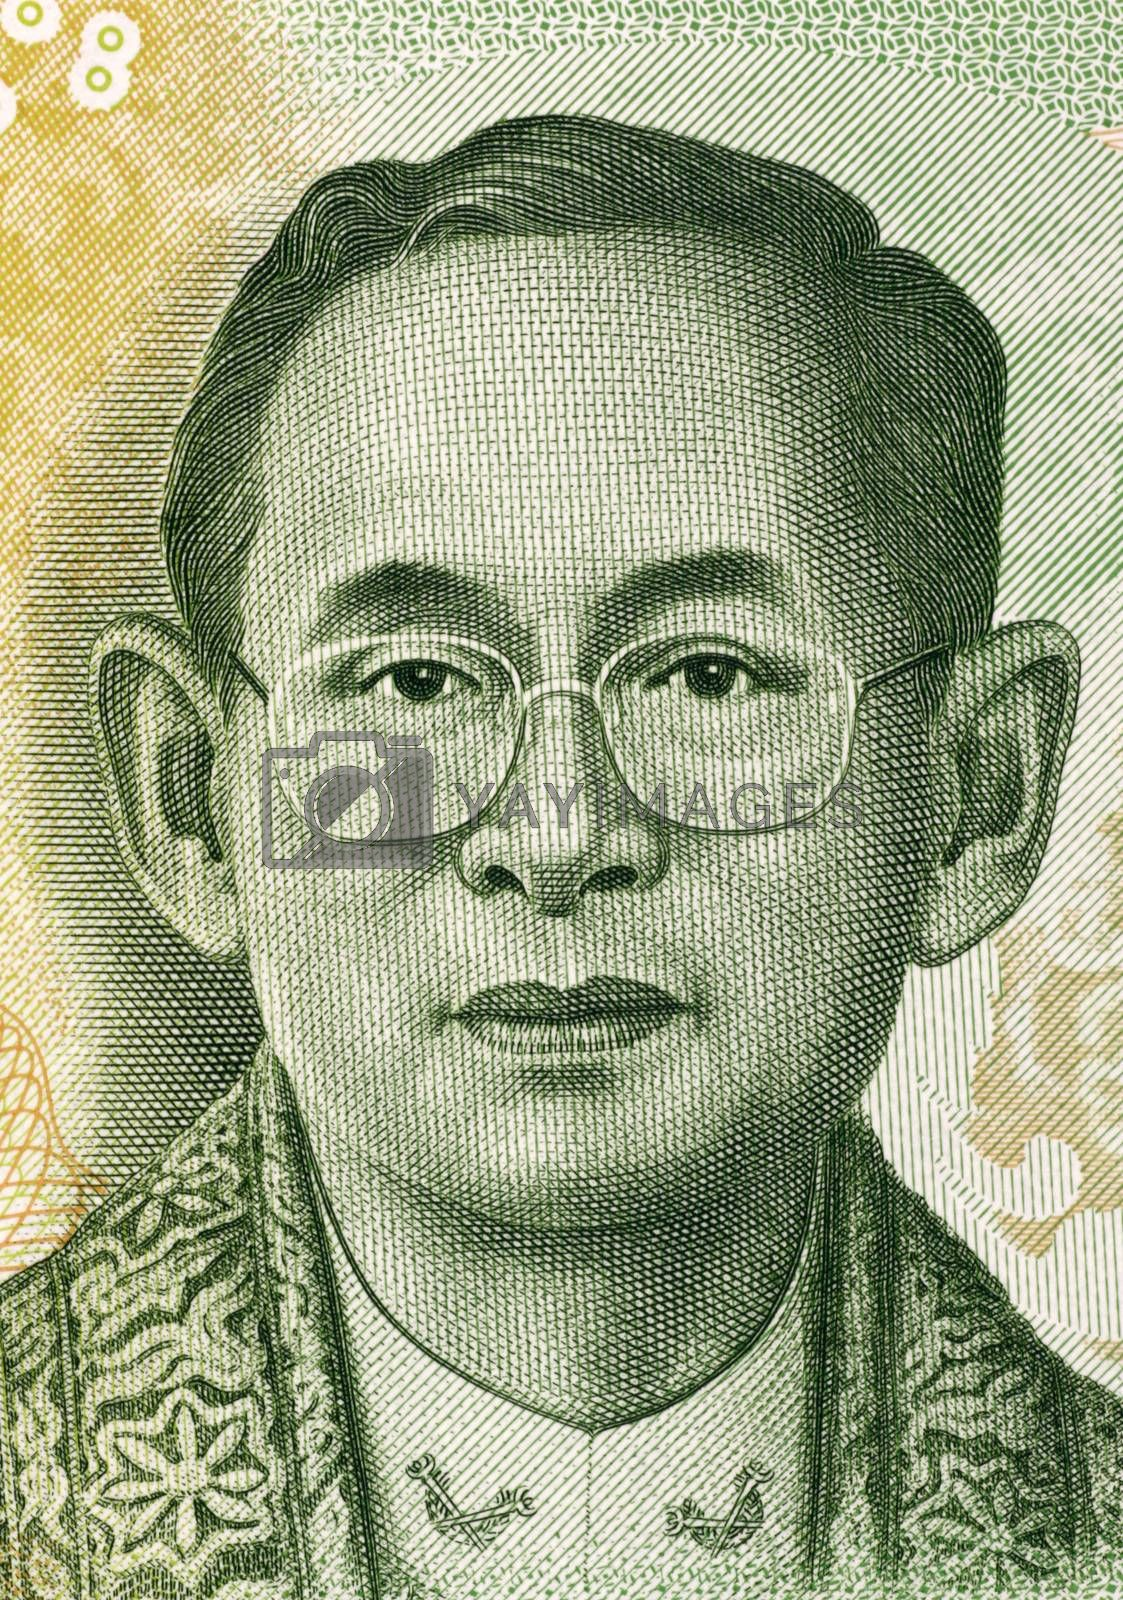 King Rama IX (born 1927) on 20 Baht 2013 Banknote from Thailand. King of Thailand.